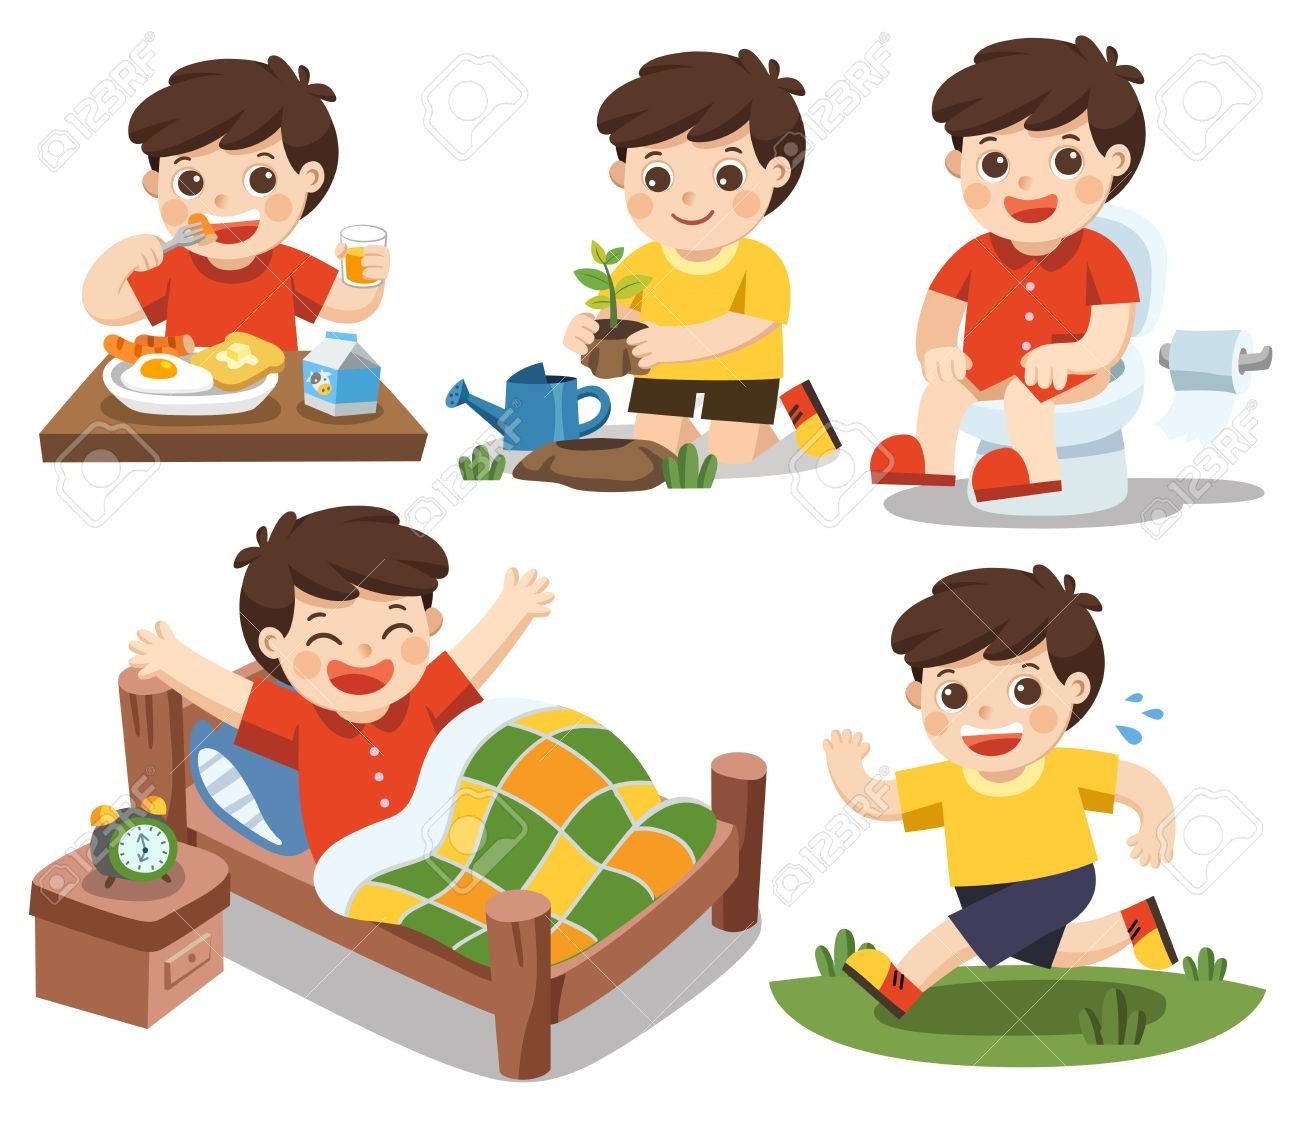 Isolated vector. The daily routine of a cute boy on a white background. [wake up, eat , sitting on the toilet, running, plant a tree] - 82606708